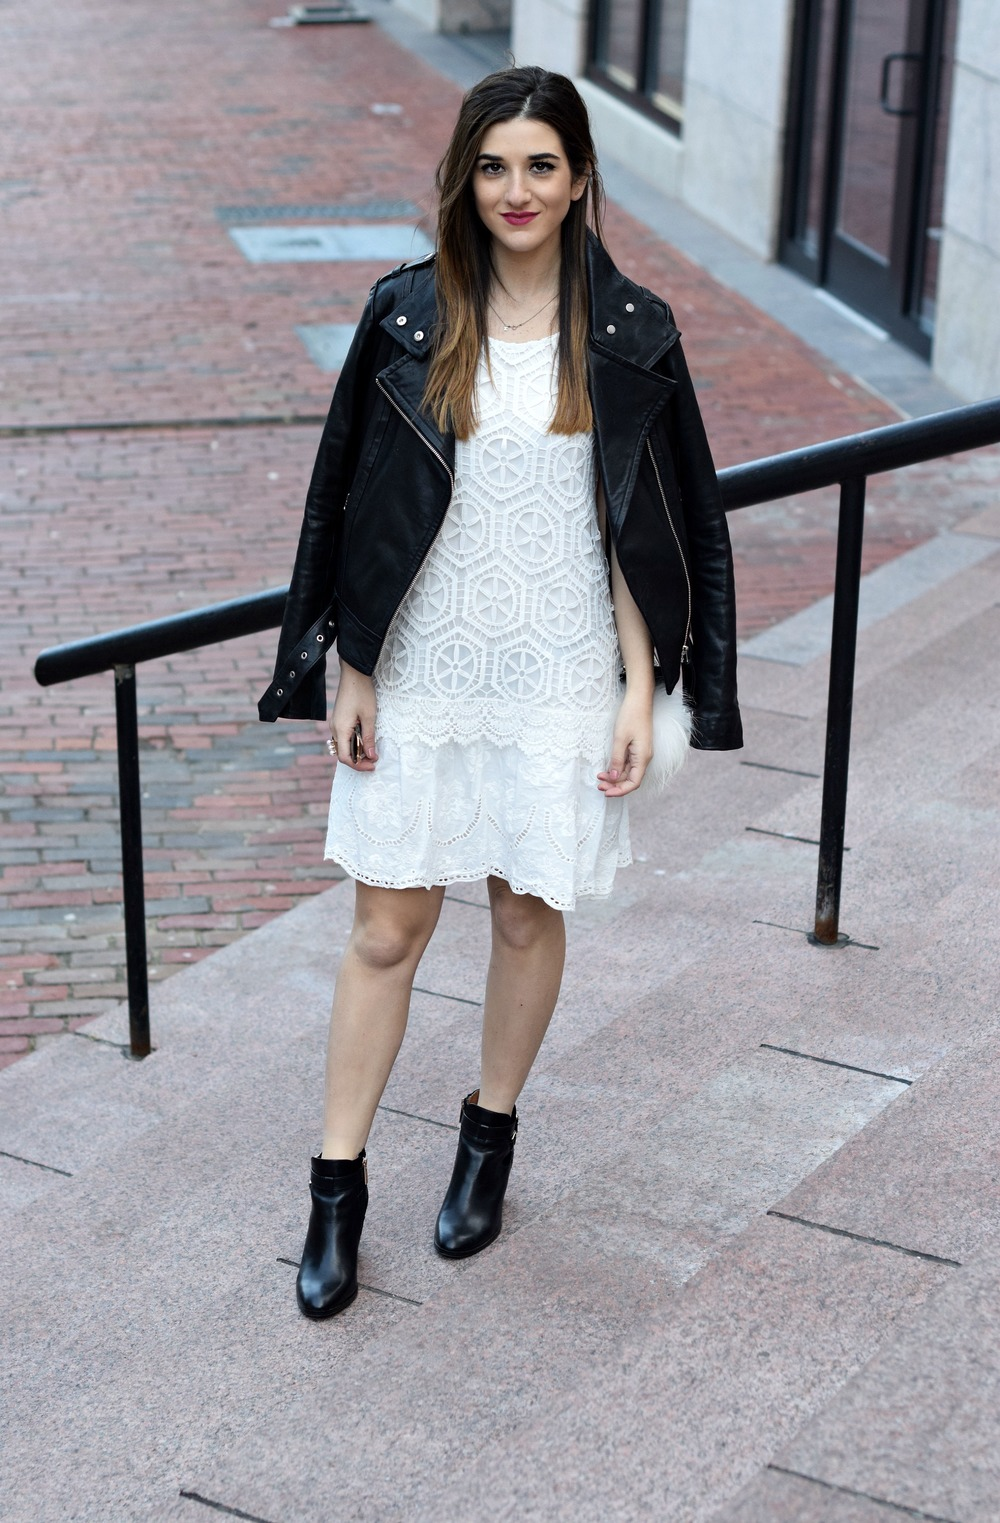 Desigual White Lace Dress Mackage Moto Jacket Louboutins & Love Fashion Blog Esther Santer NYC Street Style Blogger Outfit OOTD Black Booties Nordstrom Shoes Inspo Photoshoot Boston Leather Bag Pom Pom Fall Look Model Women Girl Beautiful Hair Pretty.jpg